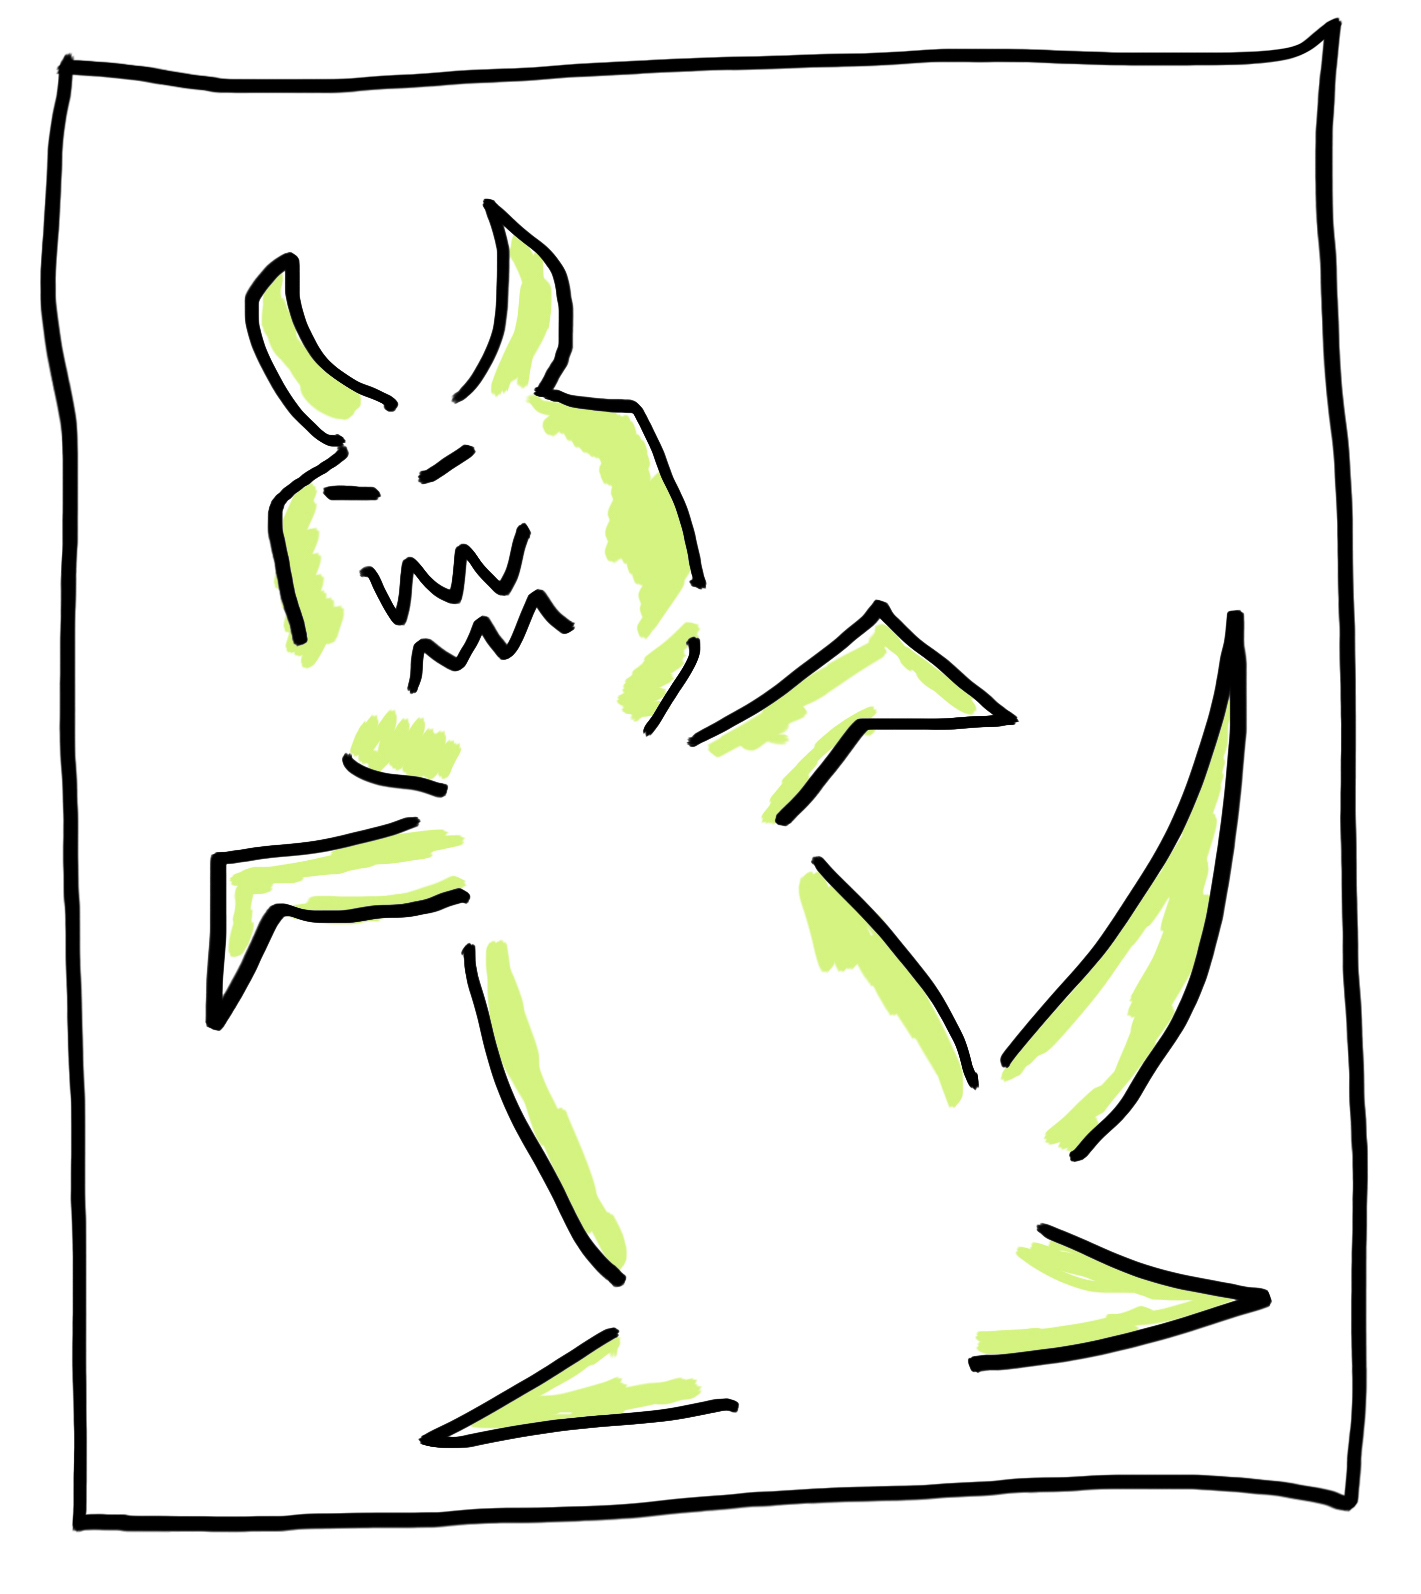 The Sunday Scaries Monster, who is actually kind of adorable.